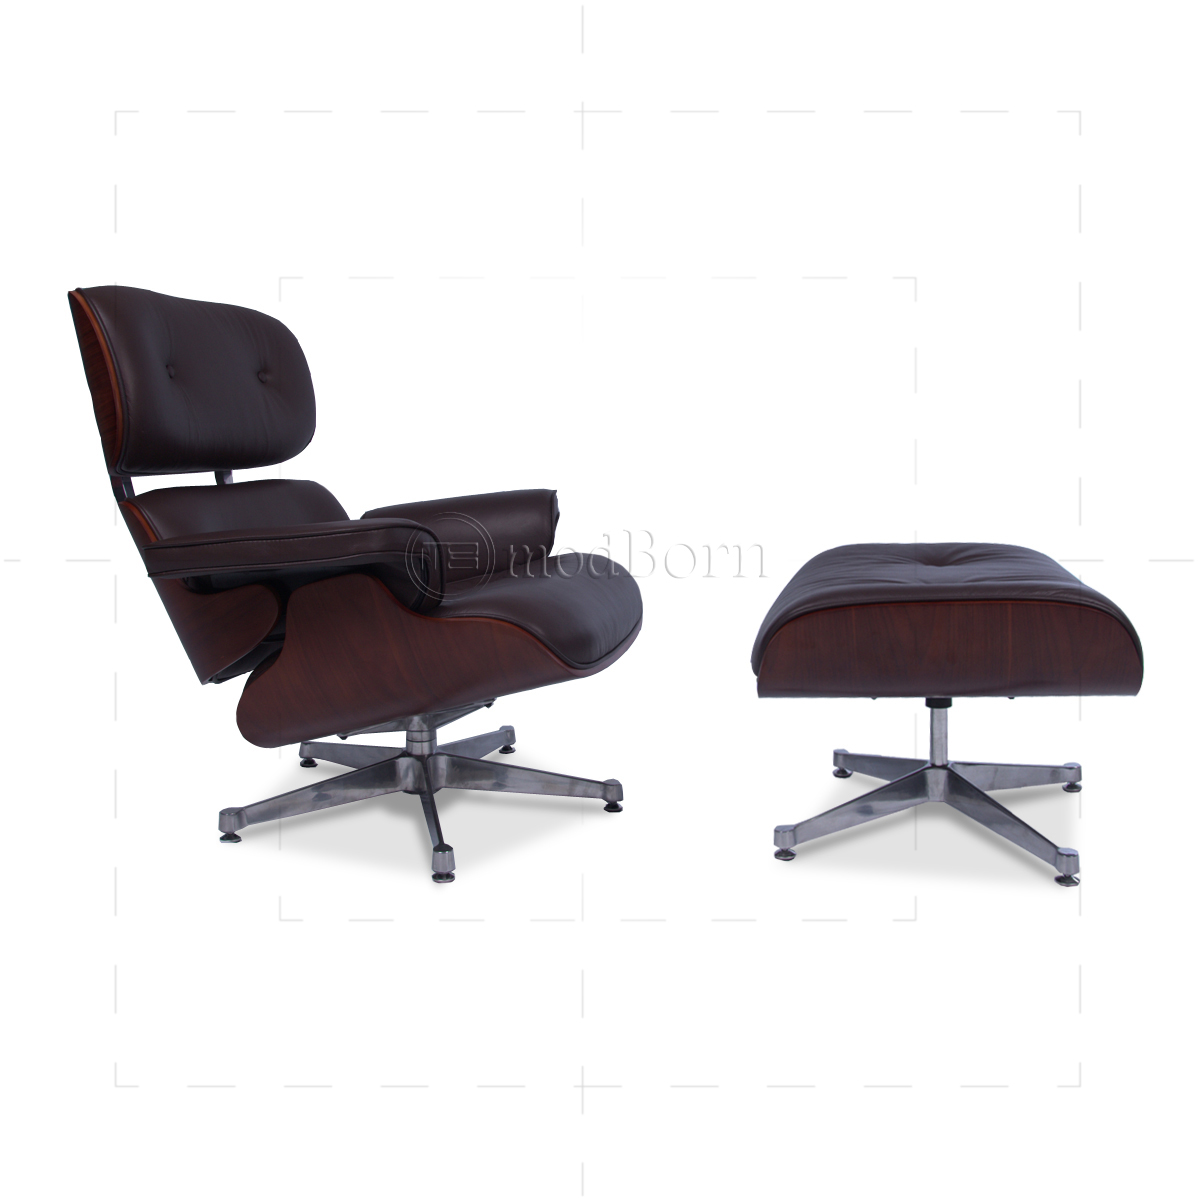 Eames style lounge chair and ottoman brown leather cherry for Eames replica deutschland